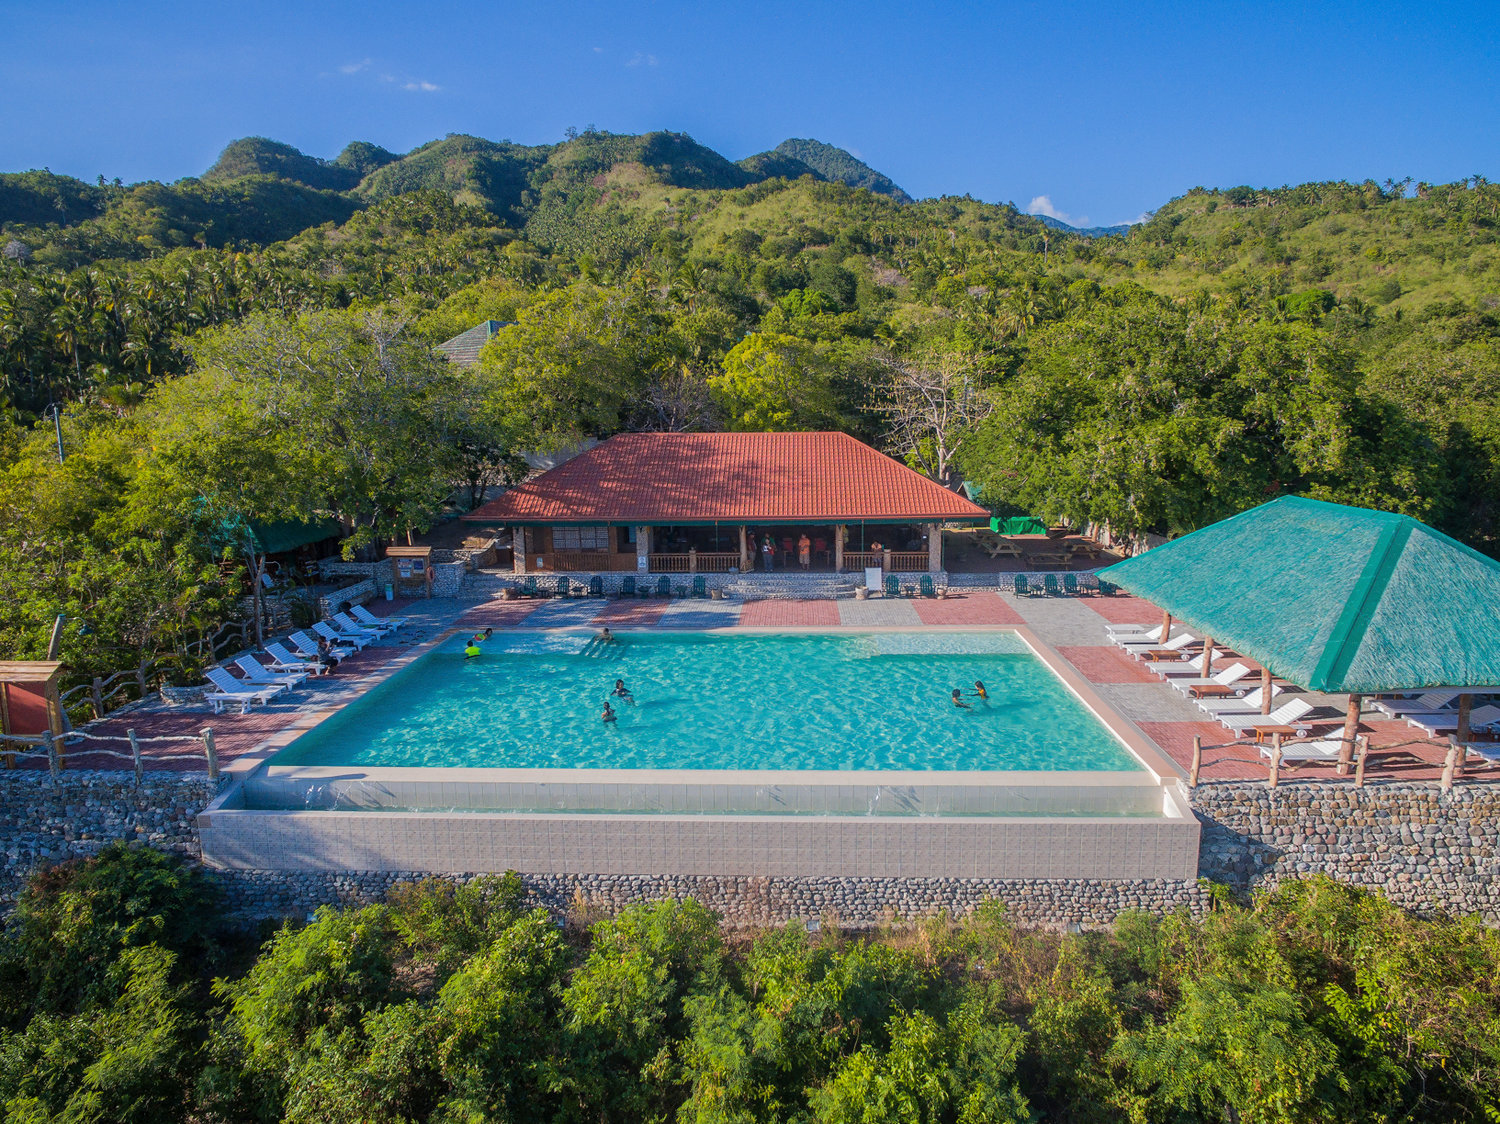 List of Best Batangas Beach Resorts, Hotels and Water Parks for 2019